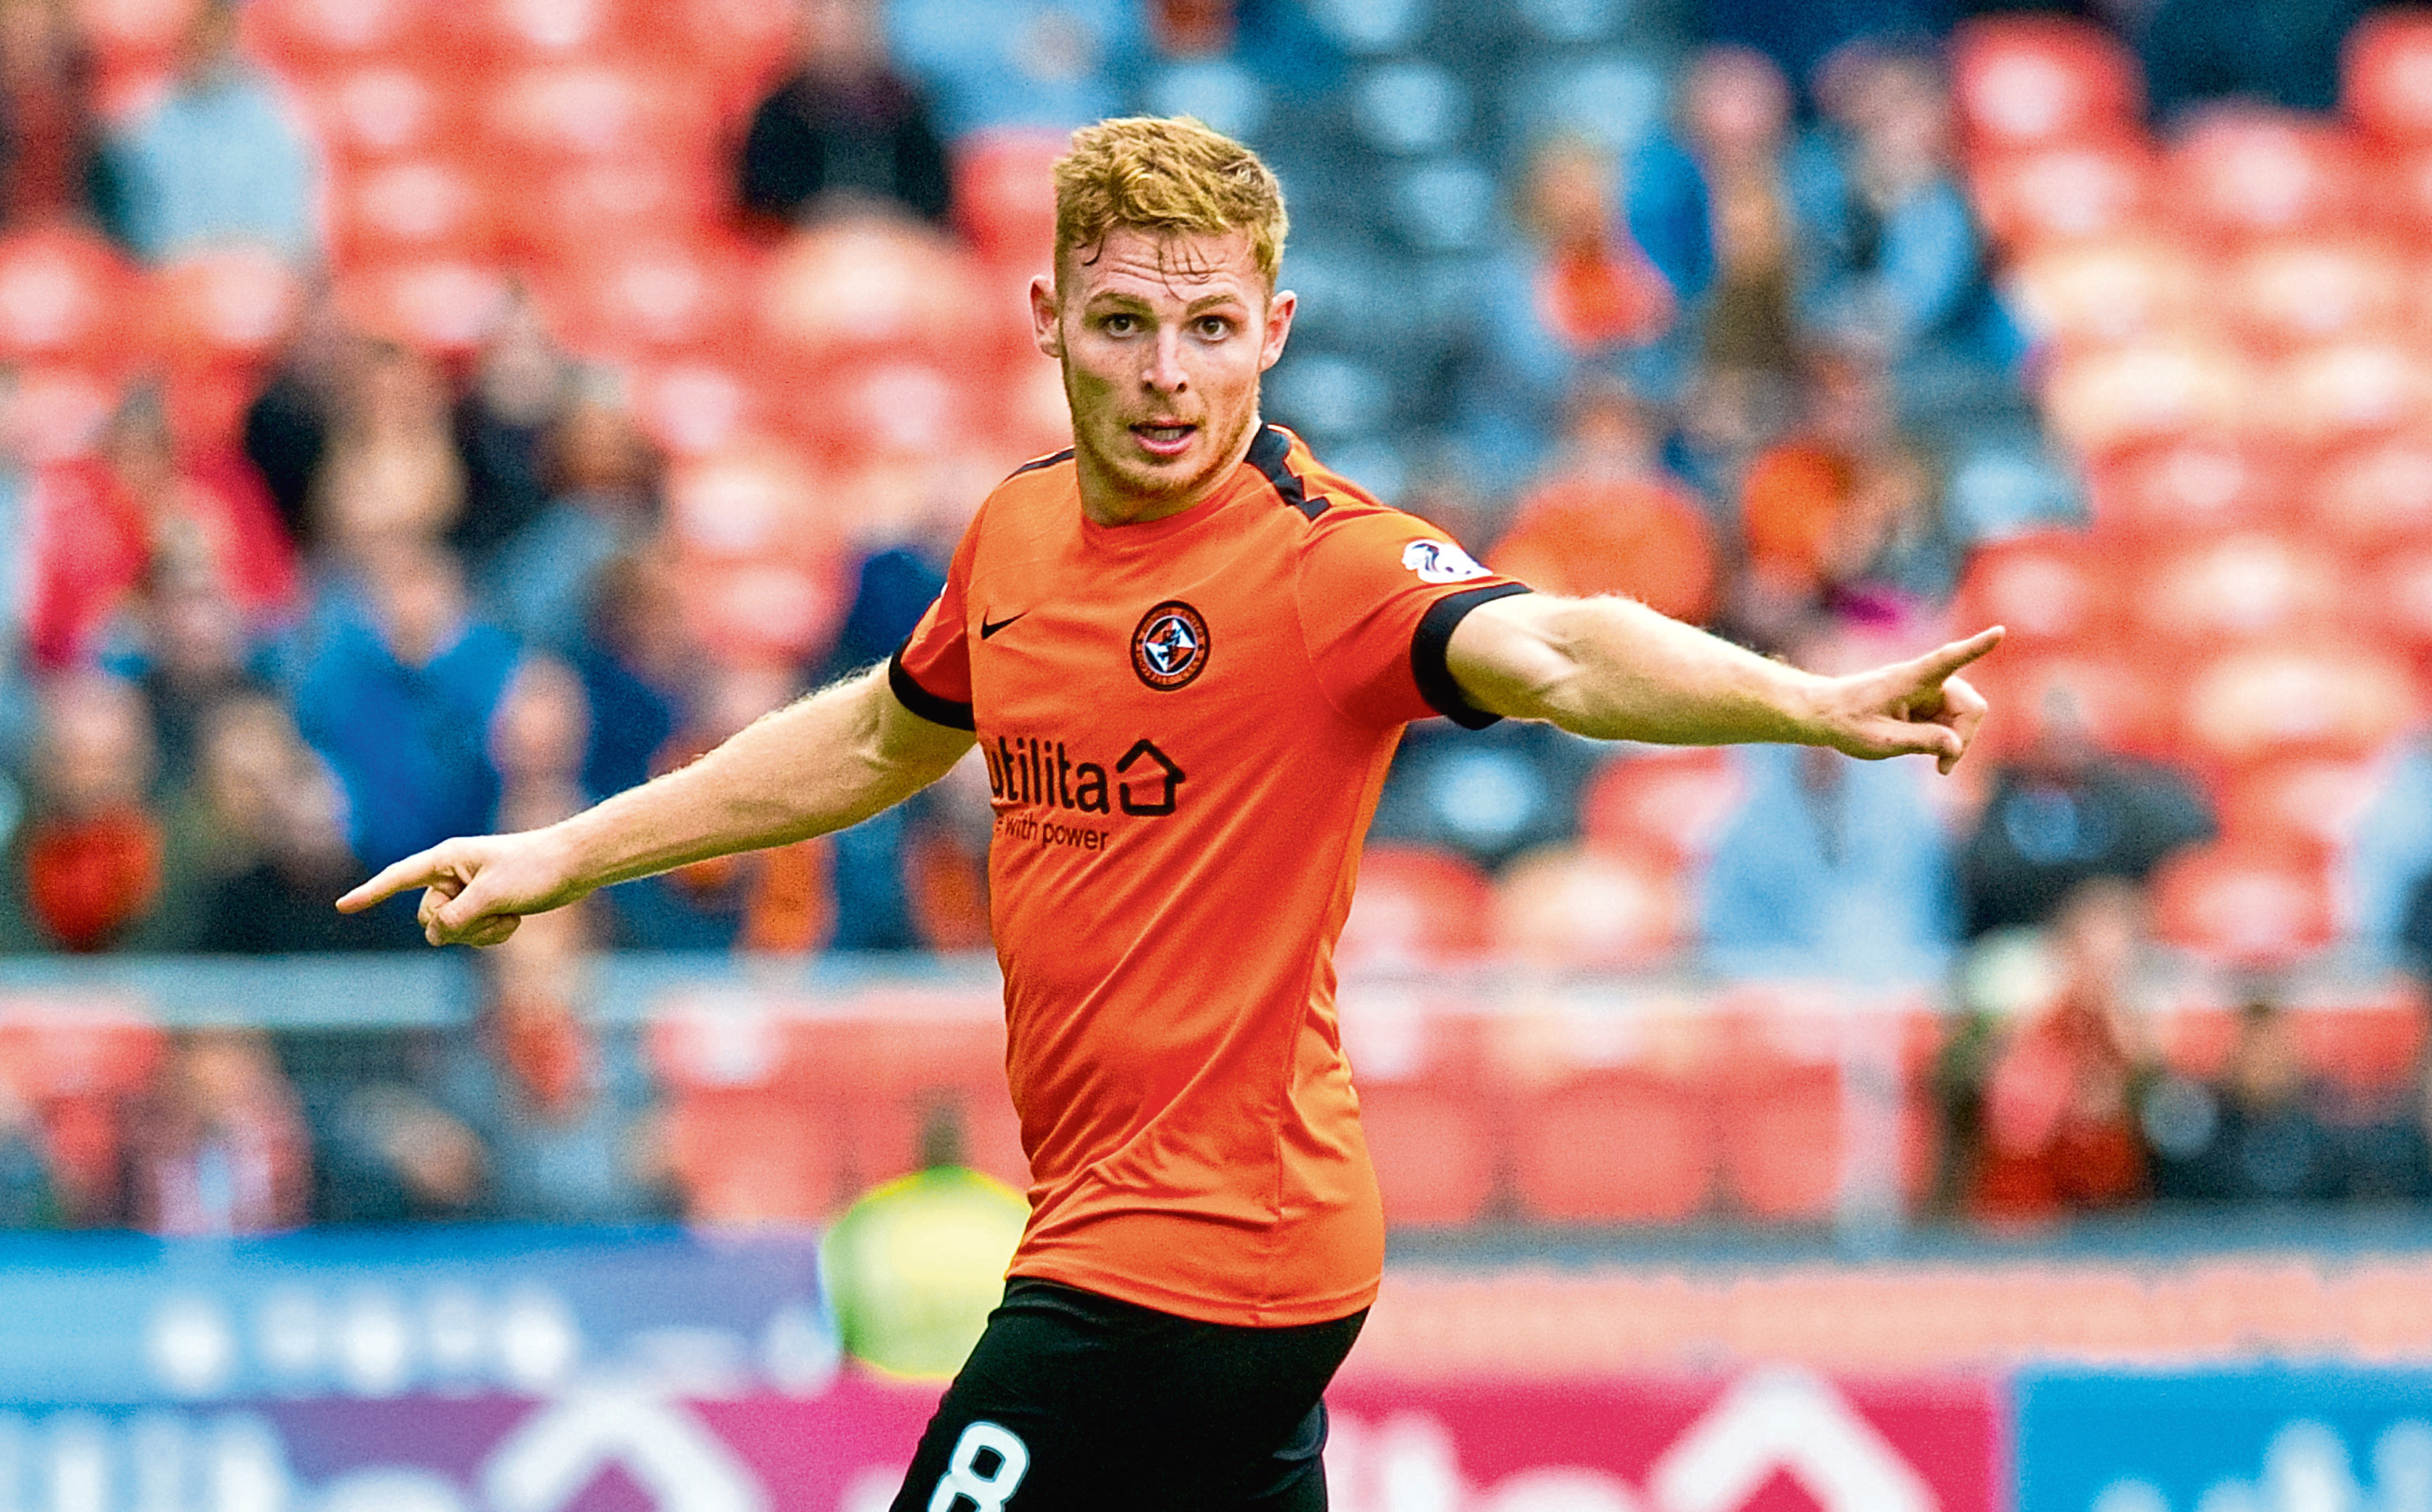 Dundee United captain Fraser Fyvie came off the bench after a long-term injury on Saturday to net a late equaliser in their 1-1 draw with Morton